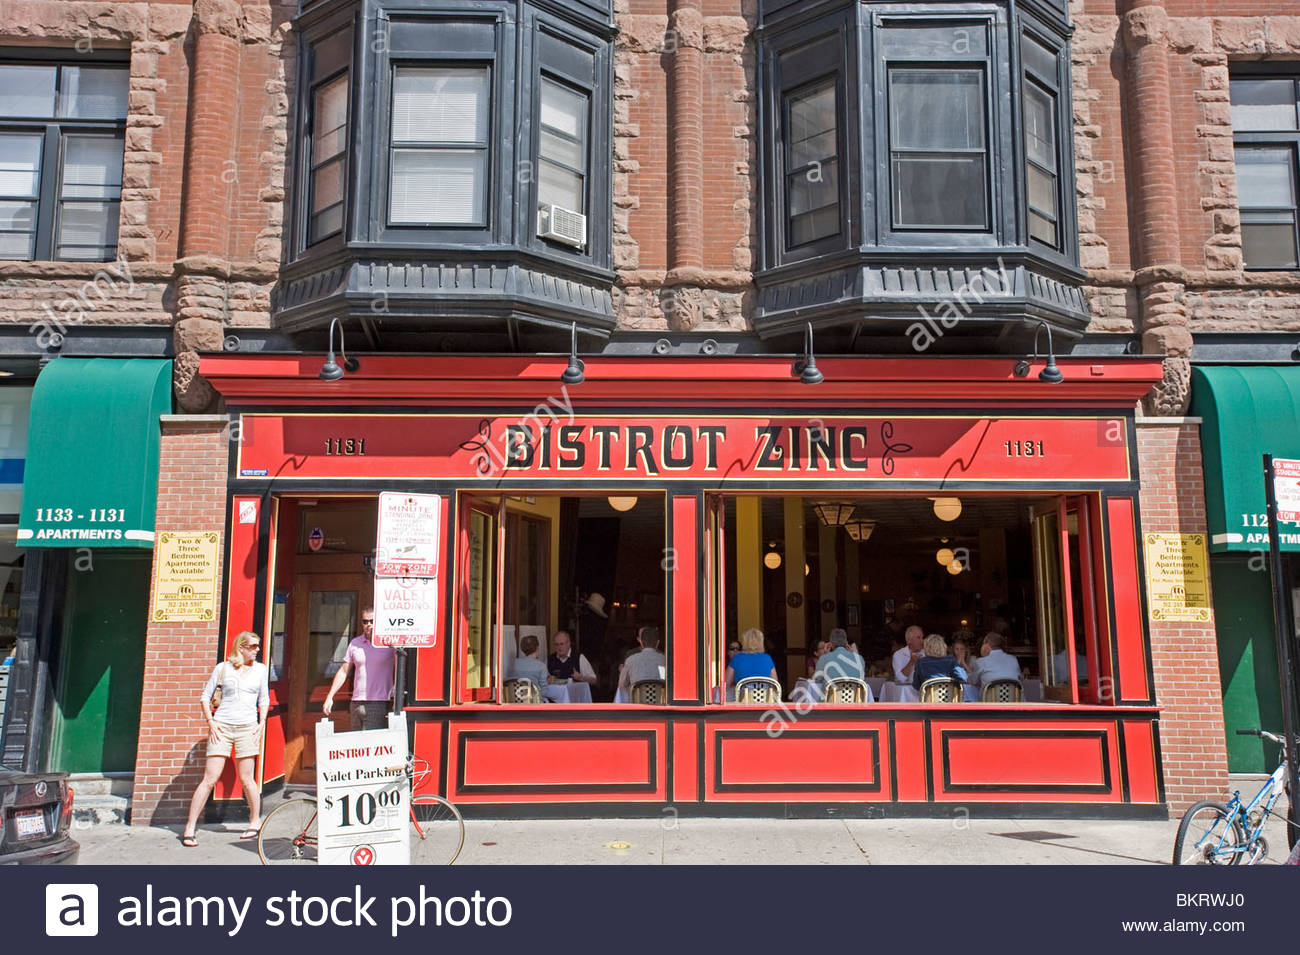 bistrot zinc in the Gold Coast area. Chicago,Illinois,Usa - Stock Image